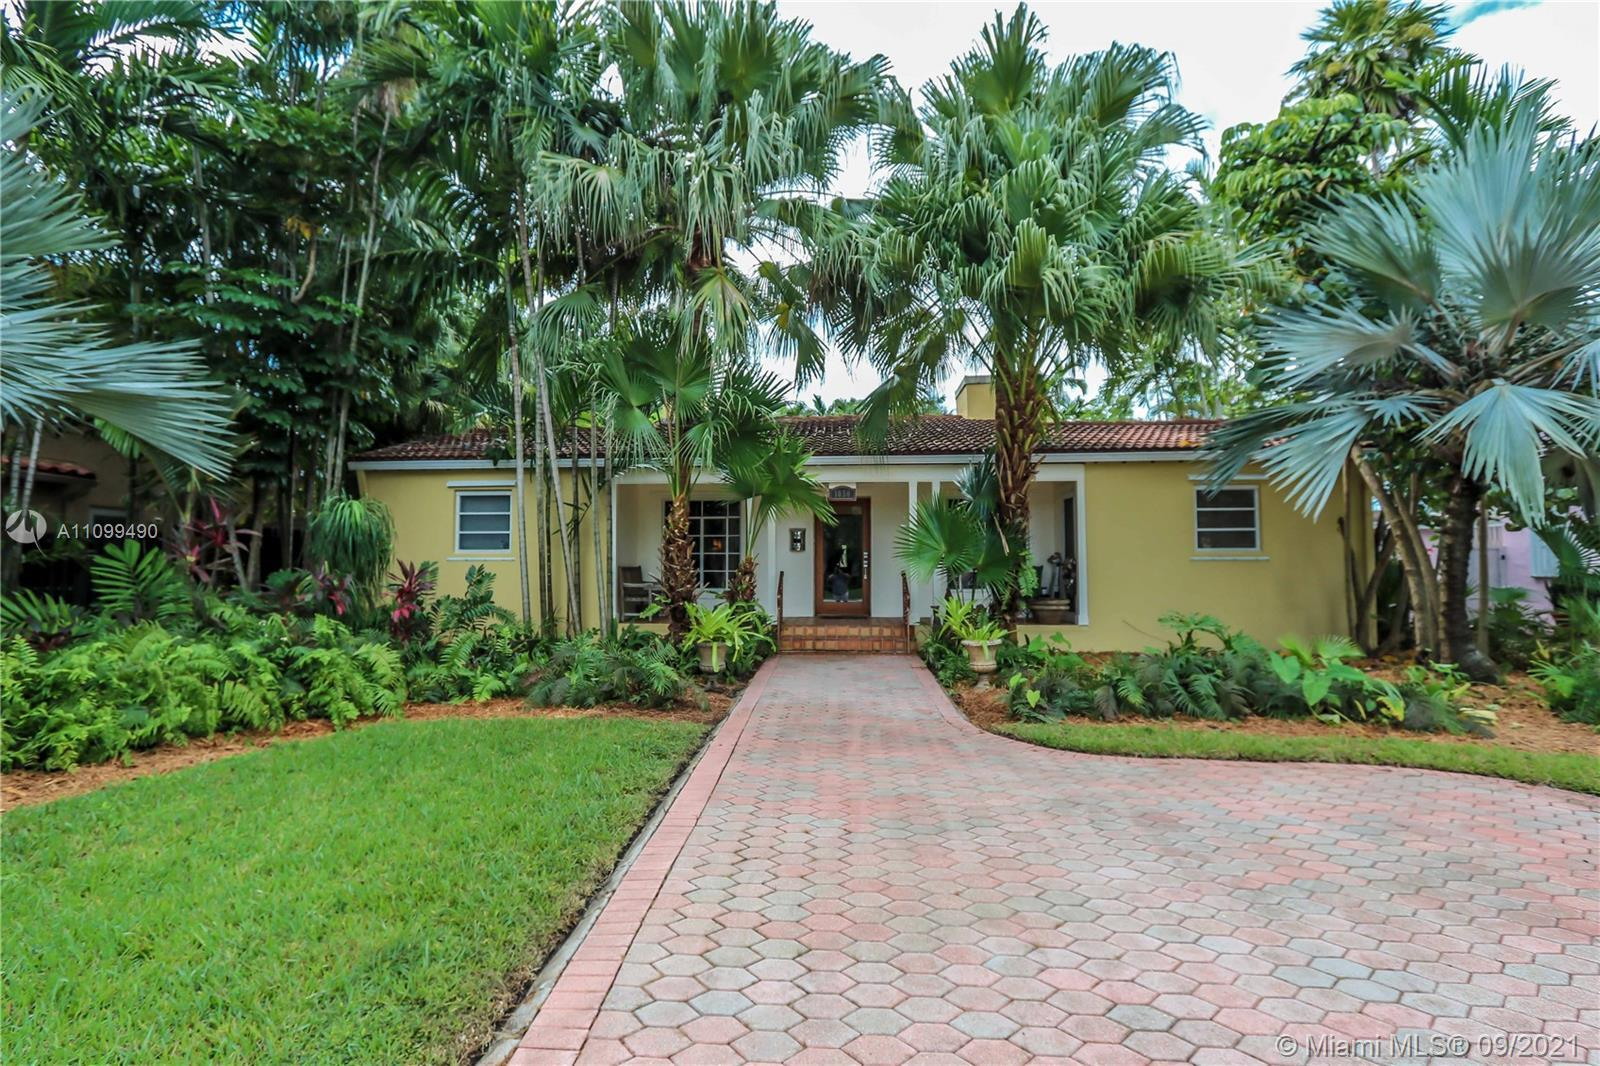 BEAUTIFUL POOL HOME ON DESIRABLE HARRISON ST IN PRESTIGIOUS HOLLYWOOD LAKES! THIS 4 BD / 3 BA HOME F